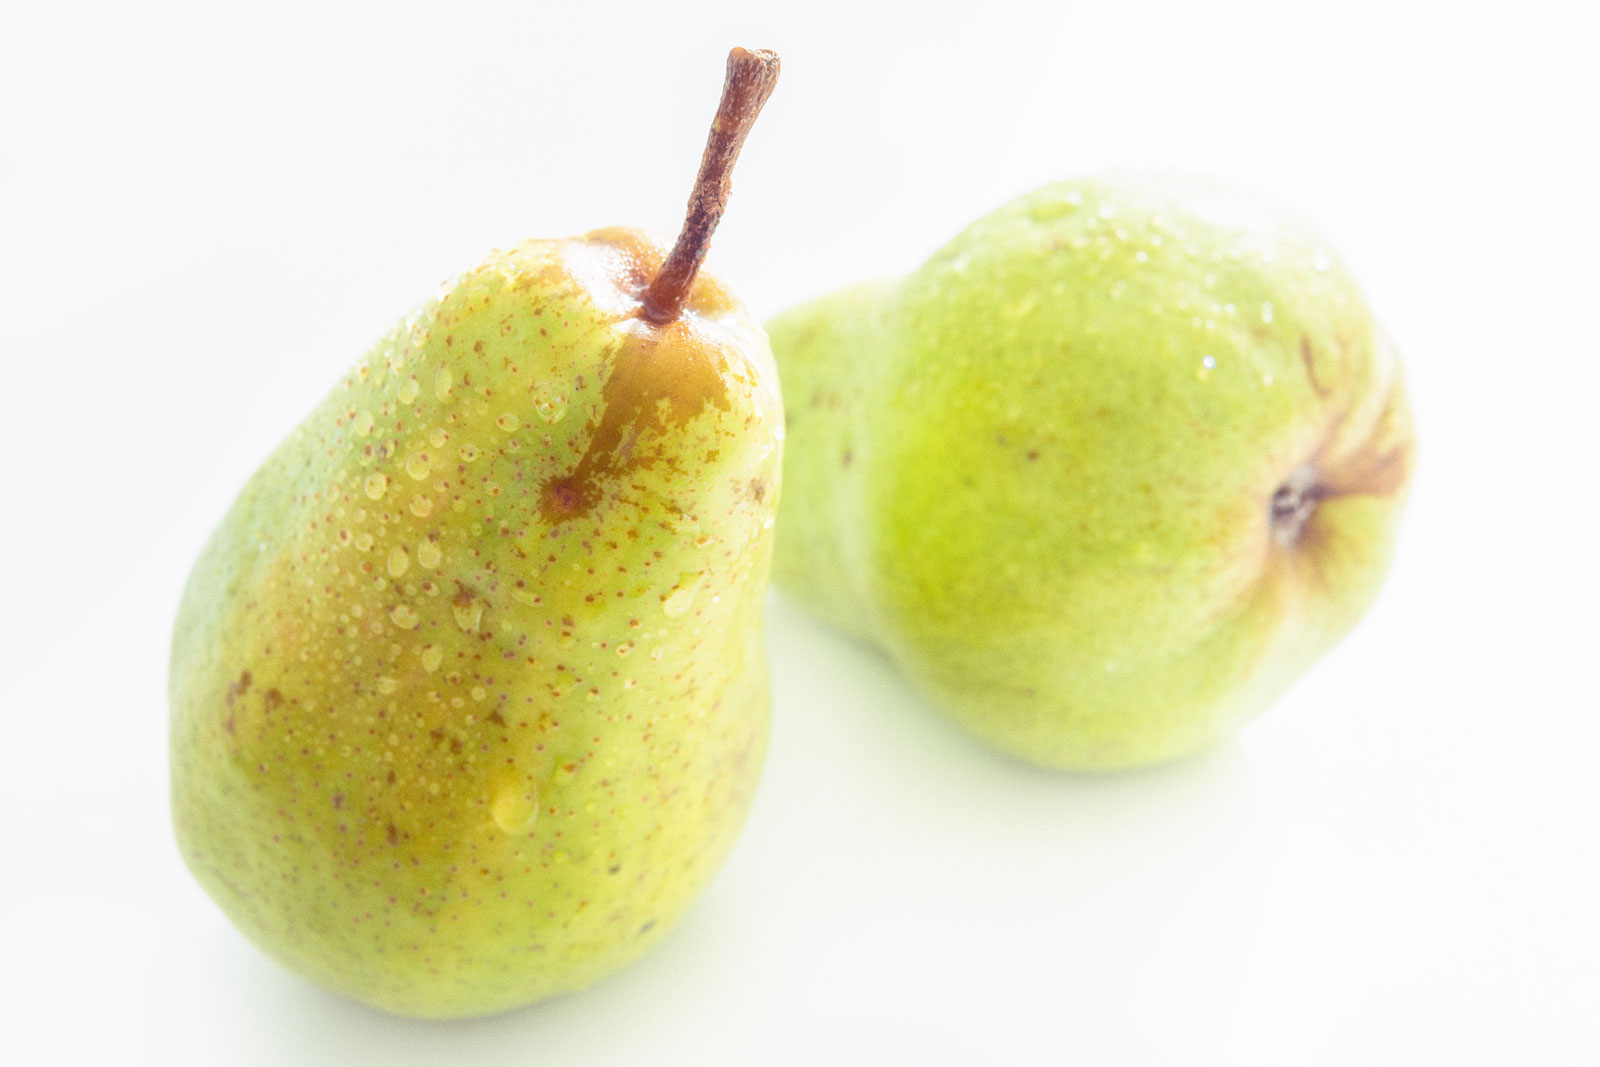 Pears | The Best Fruits and Vegetables for Juicing With 3 Ingredients